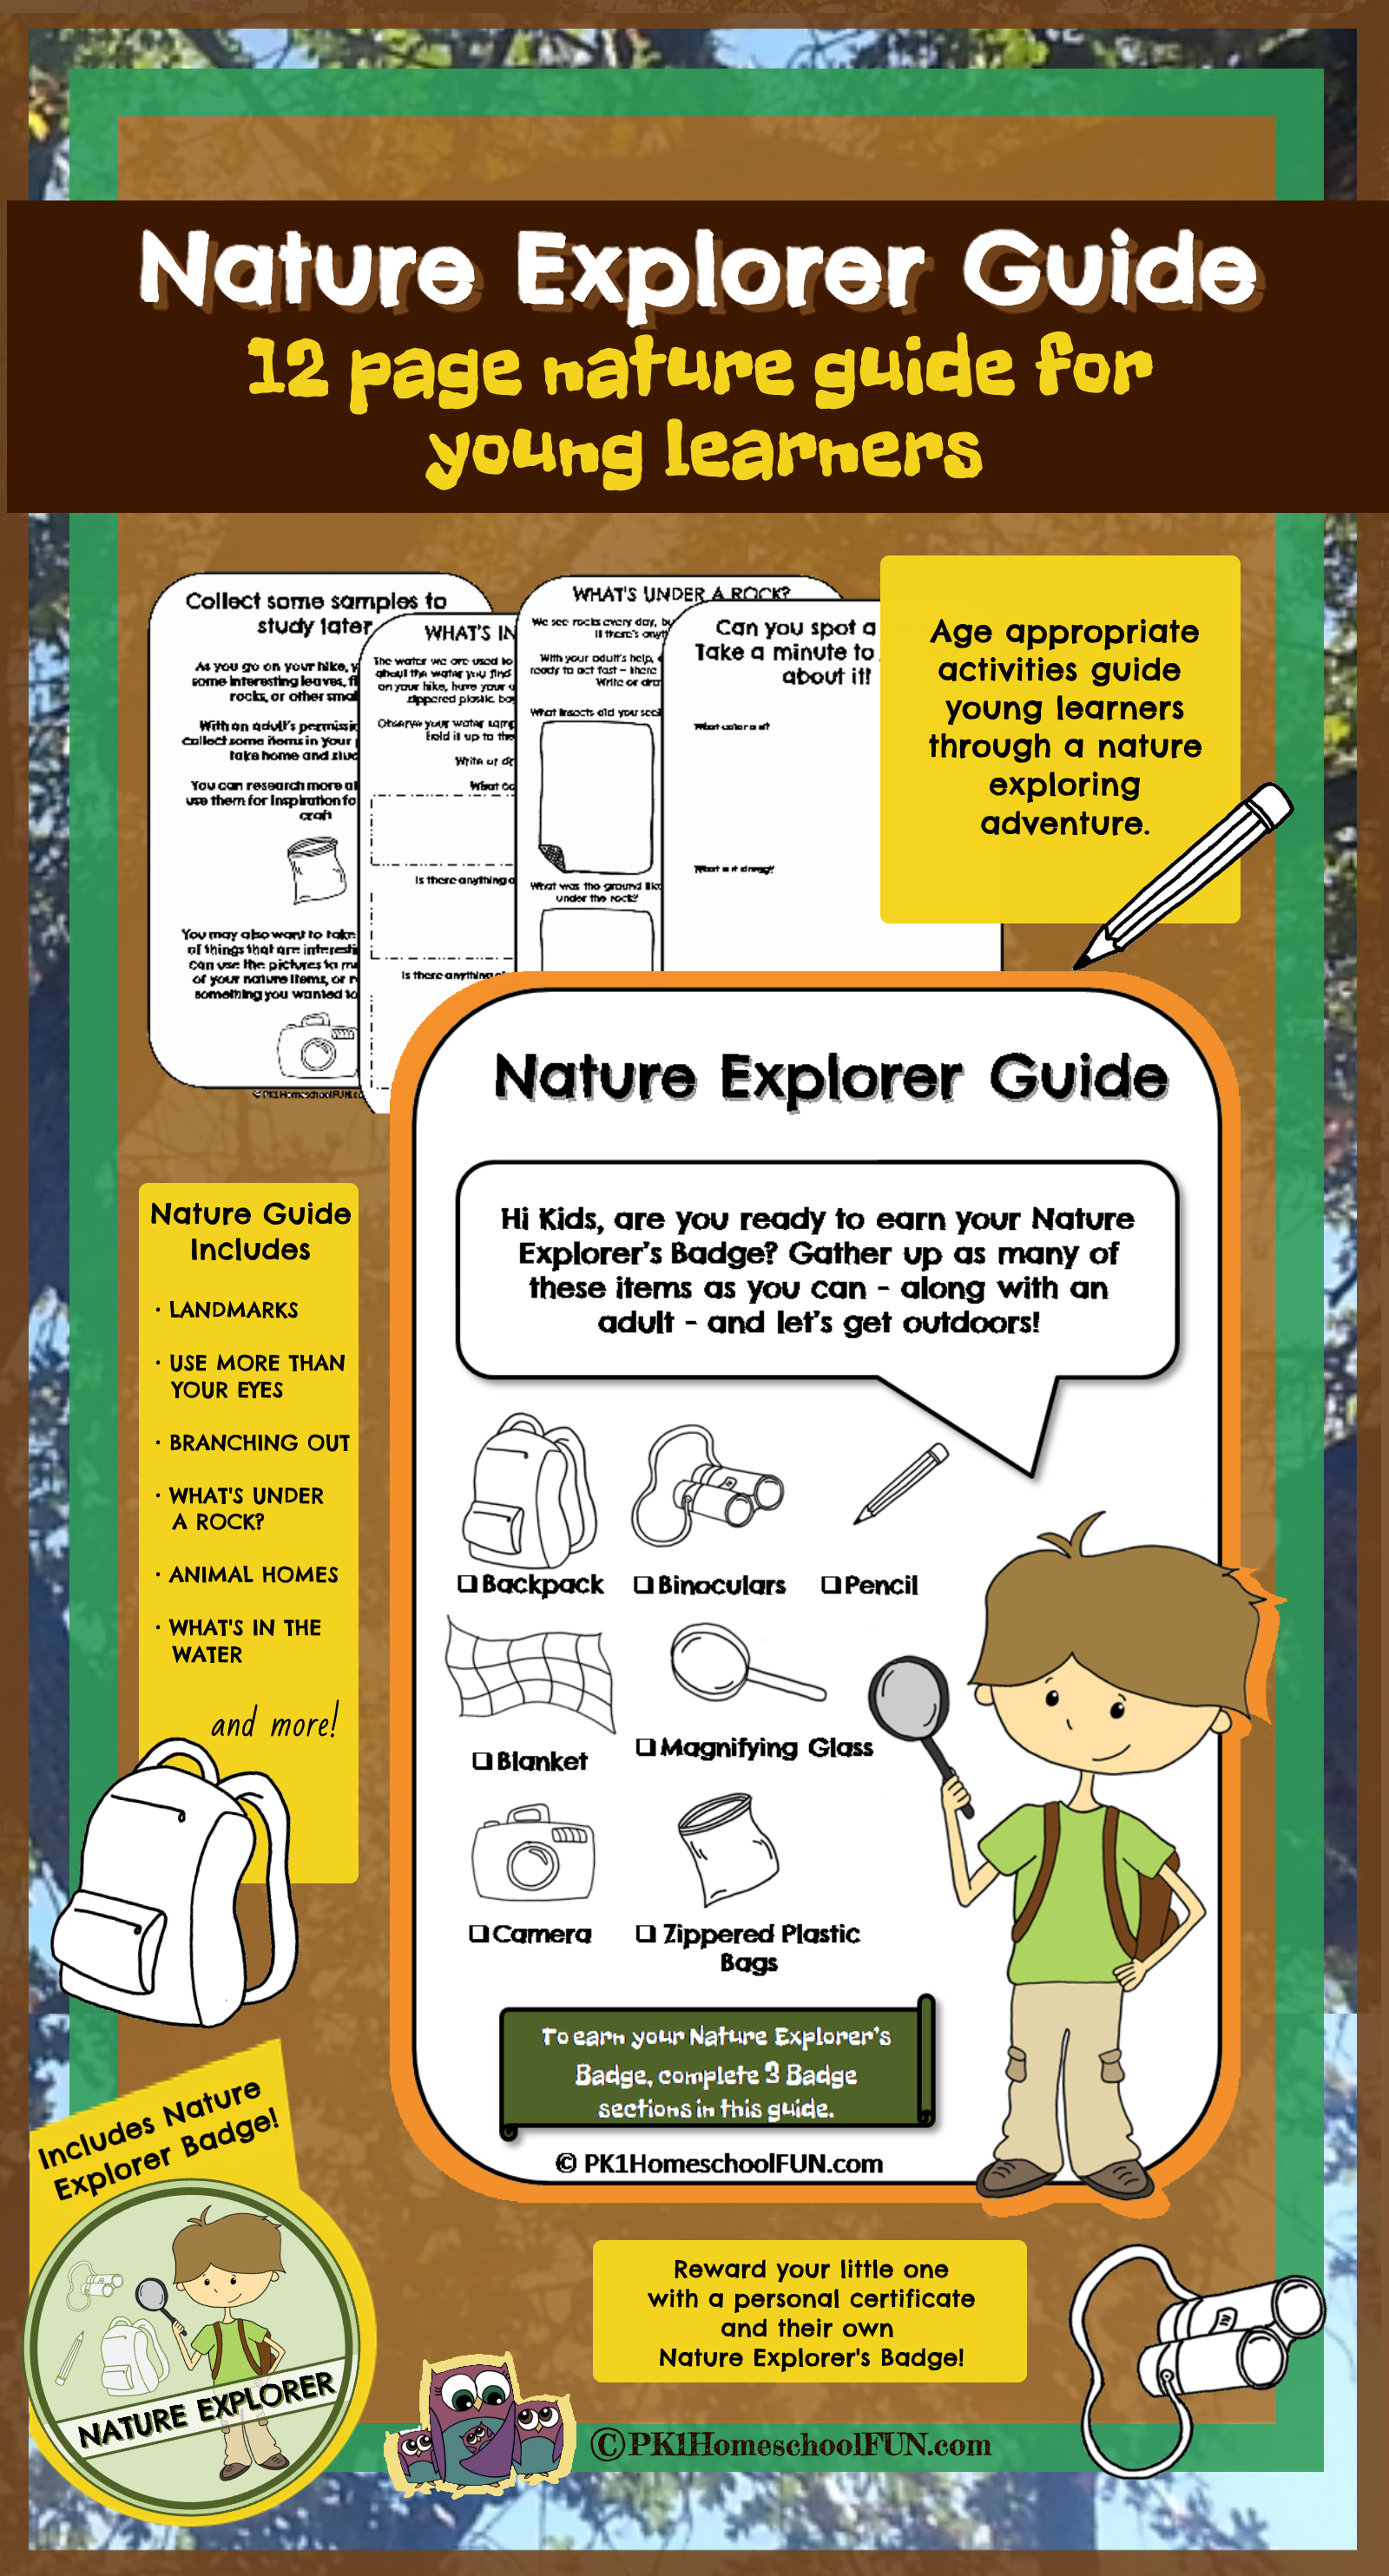 free nature explorer guide printable pack diy projects to try homeschool nature activities. Black Bedroom Furniture Sets. Home Design Ideas